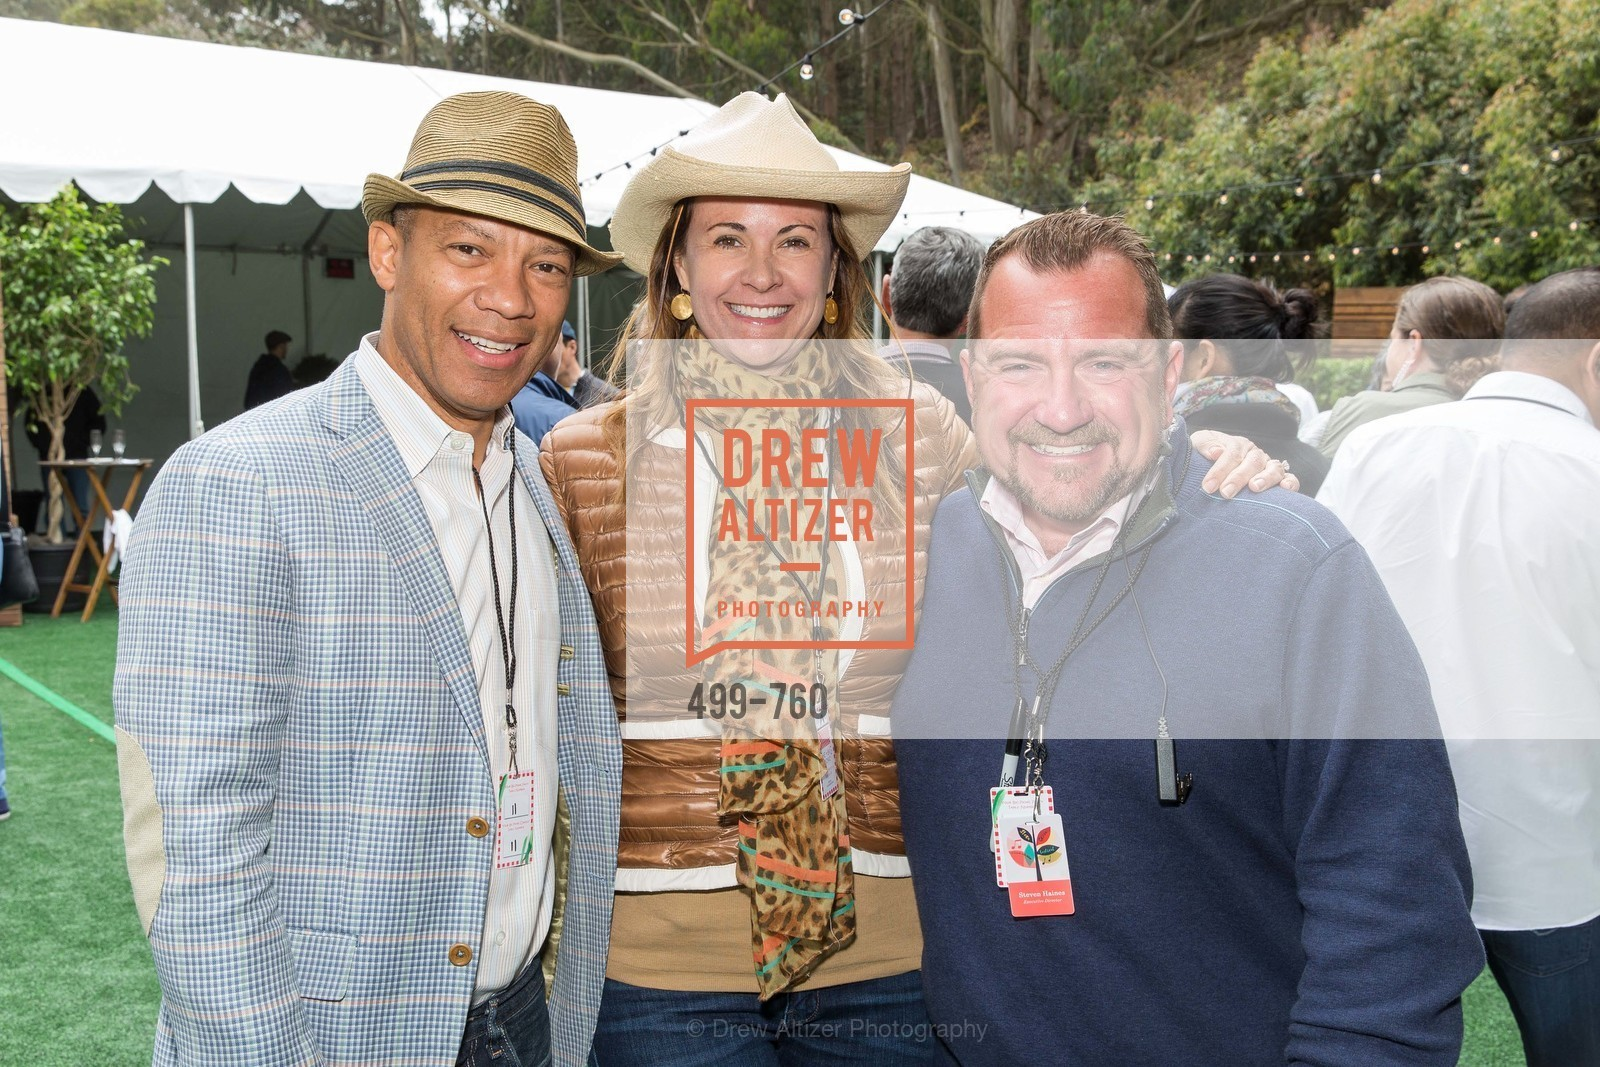 Ken McNeely, Tanya Peterson, Steven Haines, The Big Picnic! A Benefit & Concert for STERN GROVE FESTIVAL, US, June 14th, 2015,Drew Altizer, Drew Altizer Photography, full-service agency, private events, San Francisco photographer, photographer california